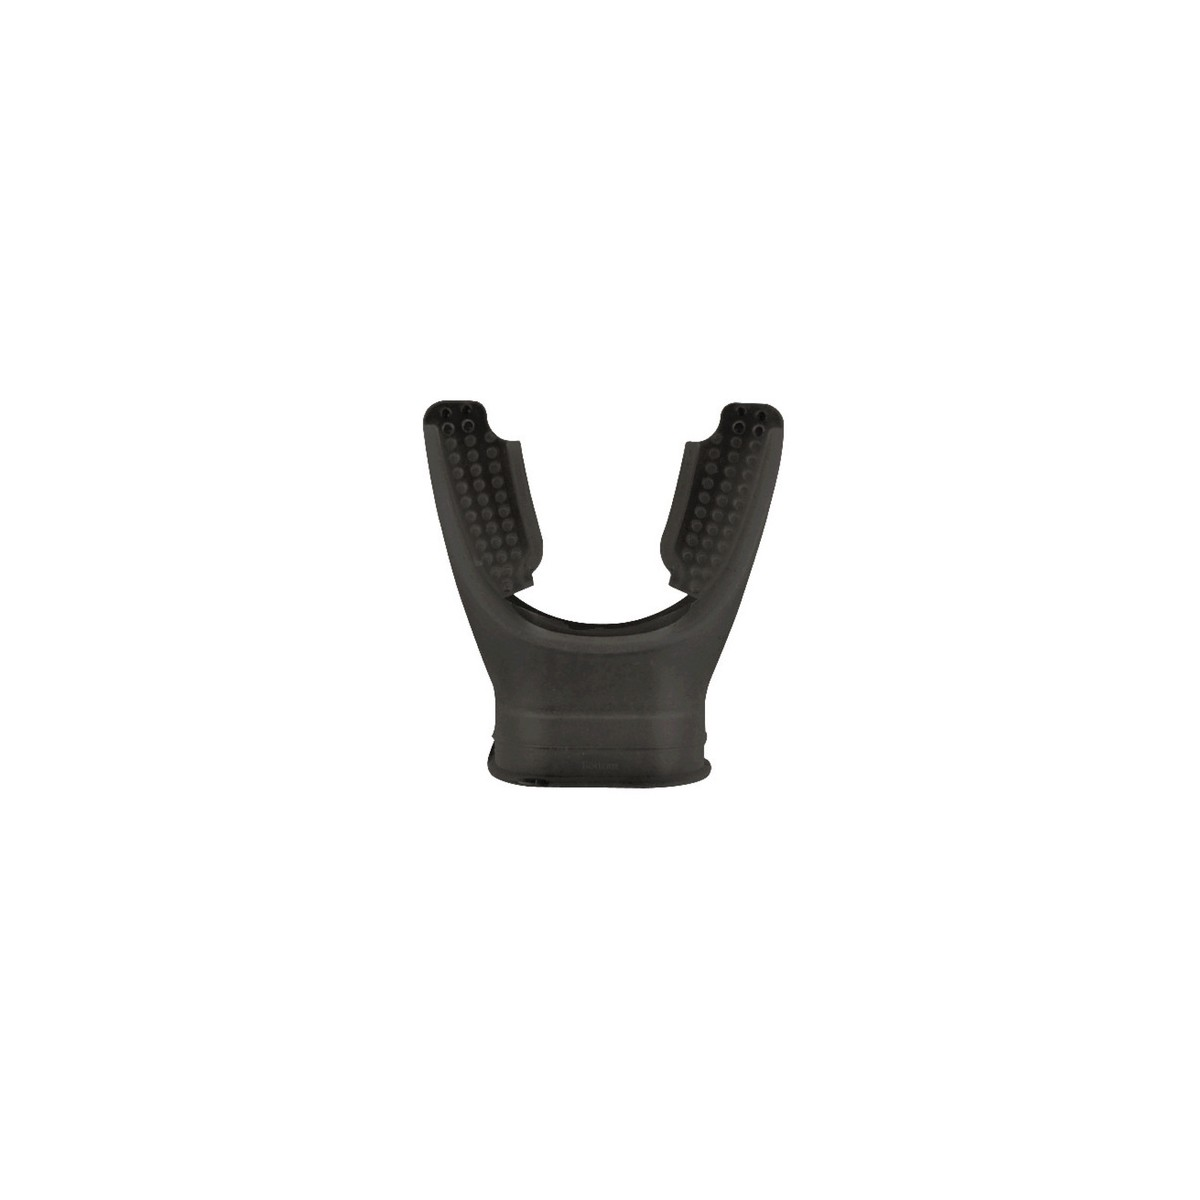 Xs Scuba Extended Tab Mouthpieces